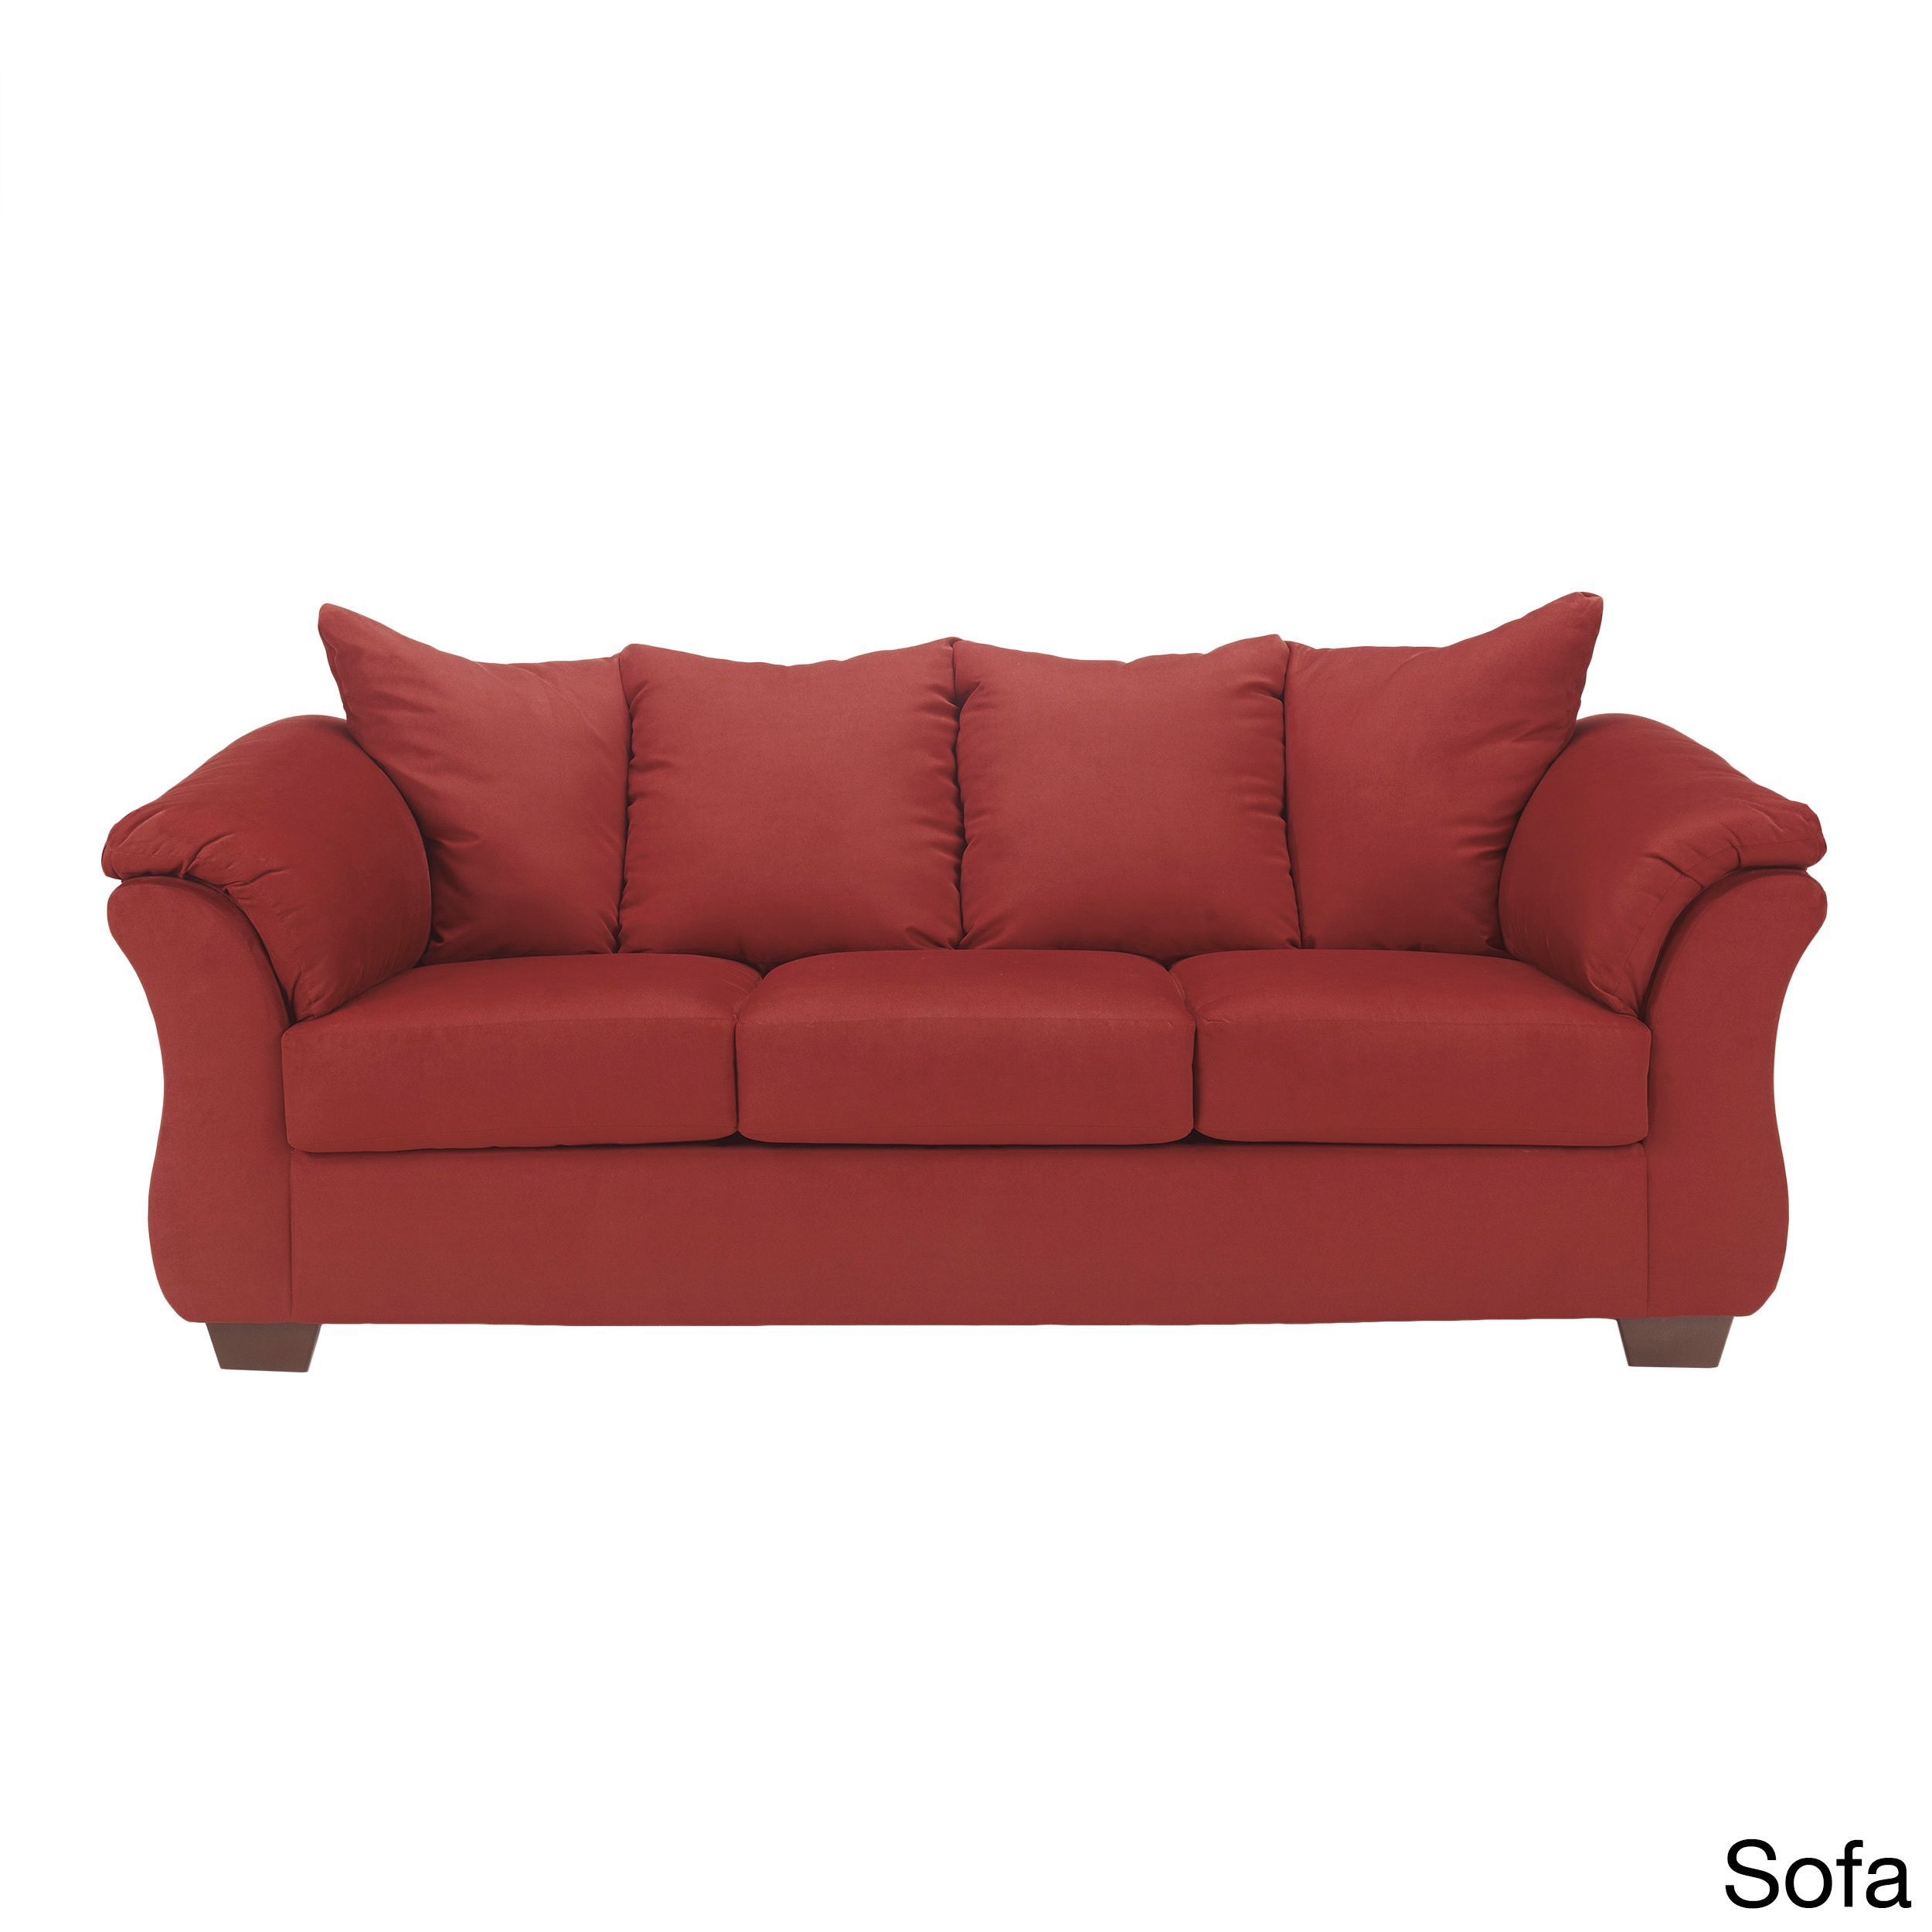 Signature Designs by Ashley Darcy Salsa Sofa Overstock Shopping